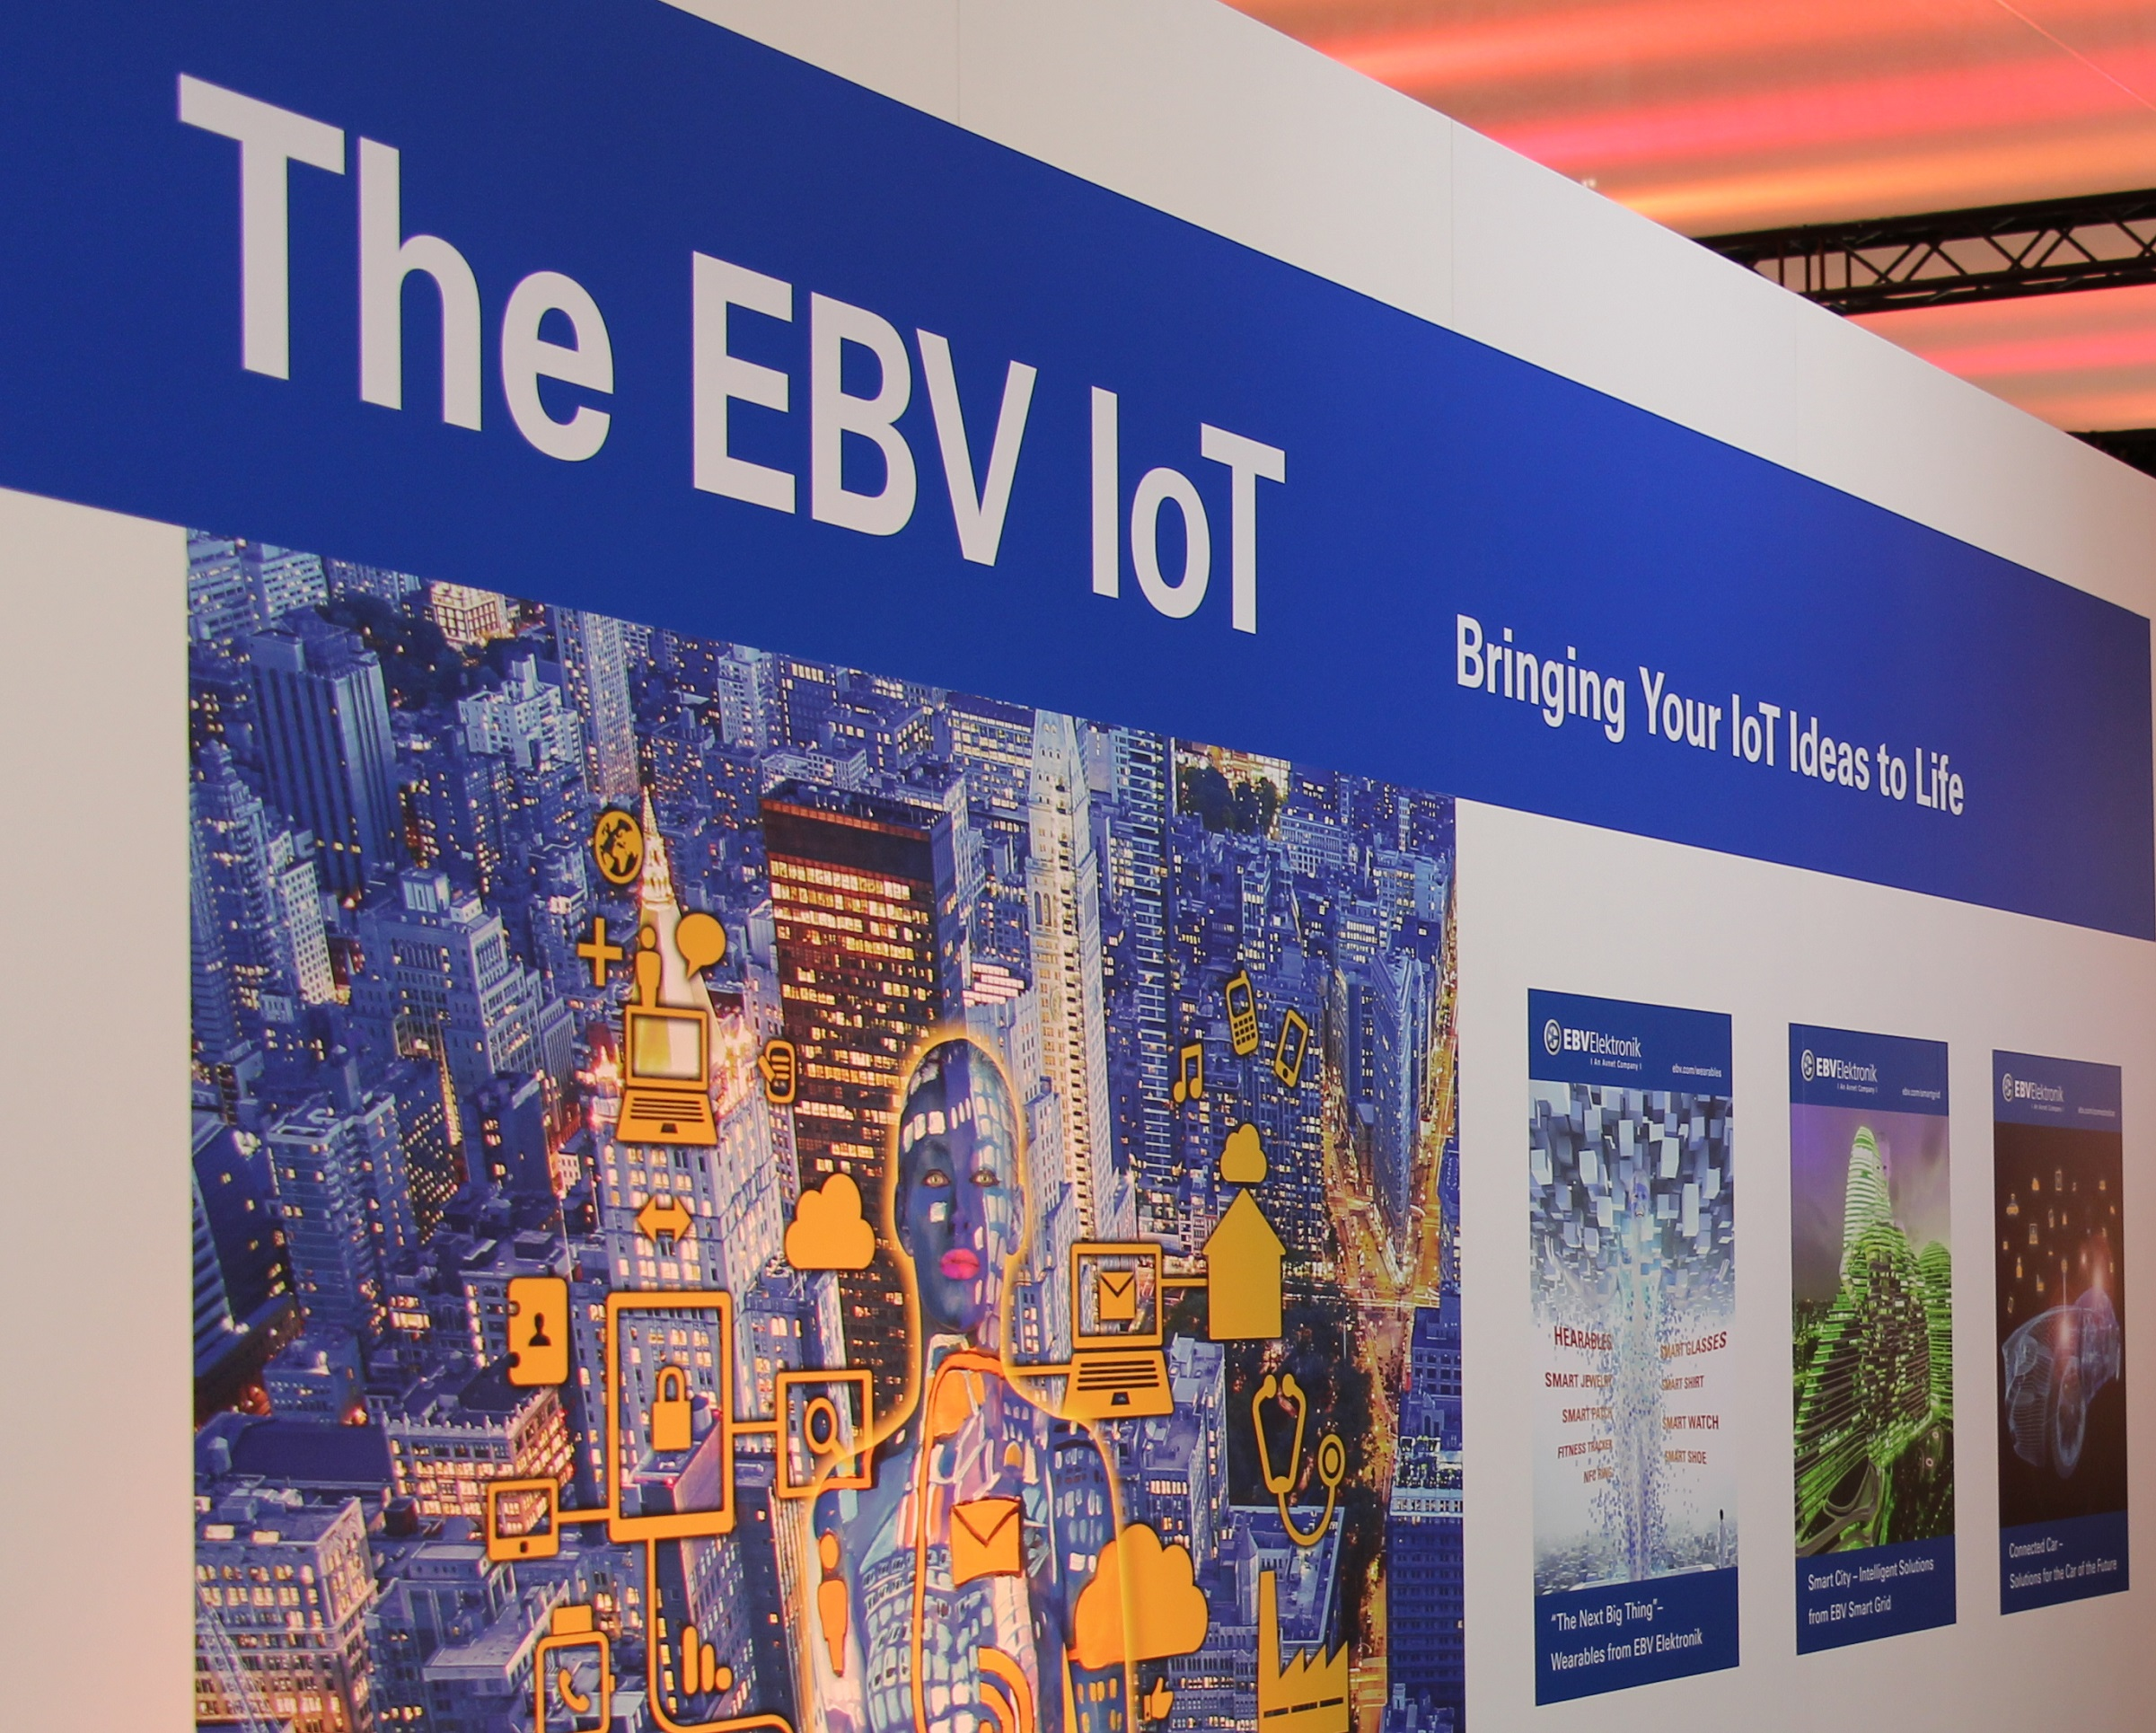 embedded world ebv iot